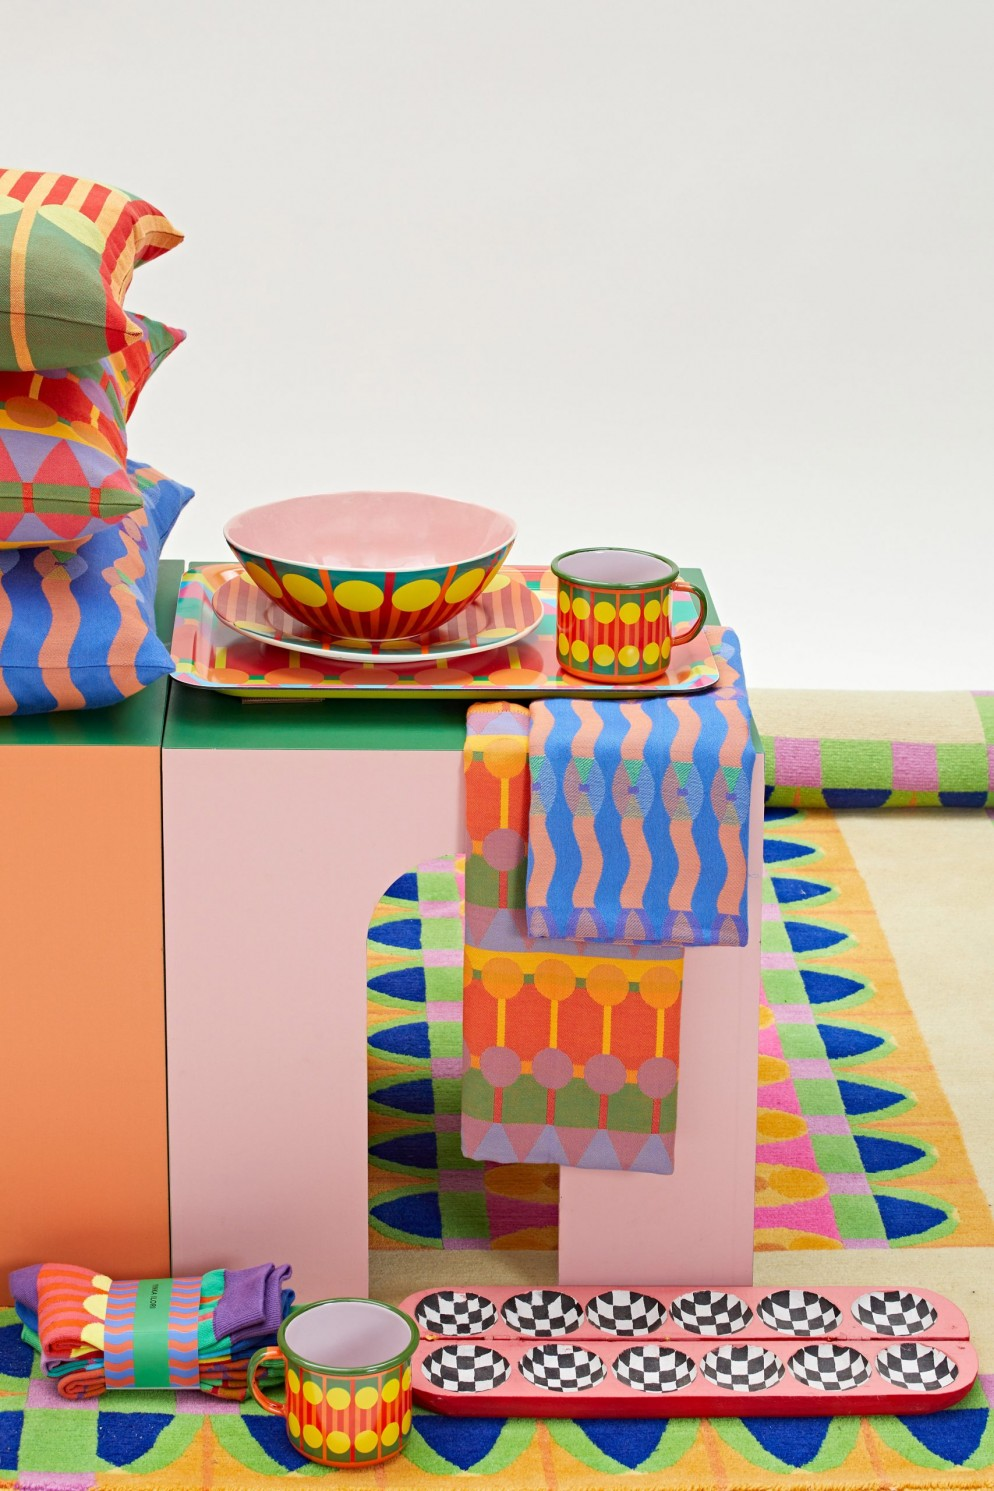 yinka-ilori-homeware-living-corriere-4